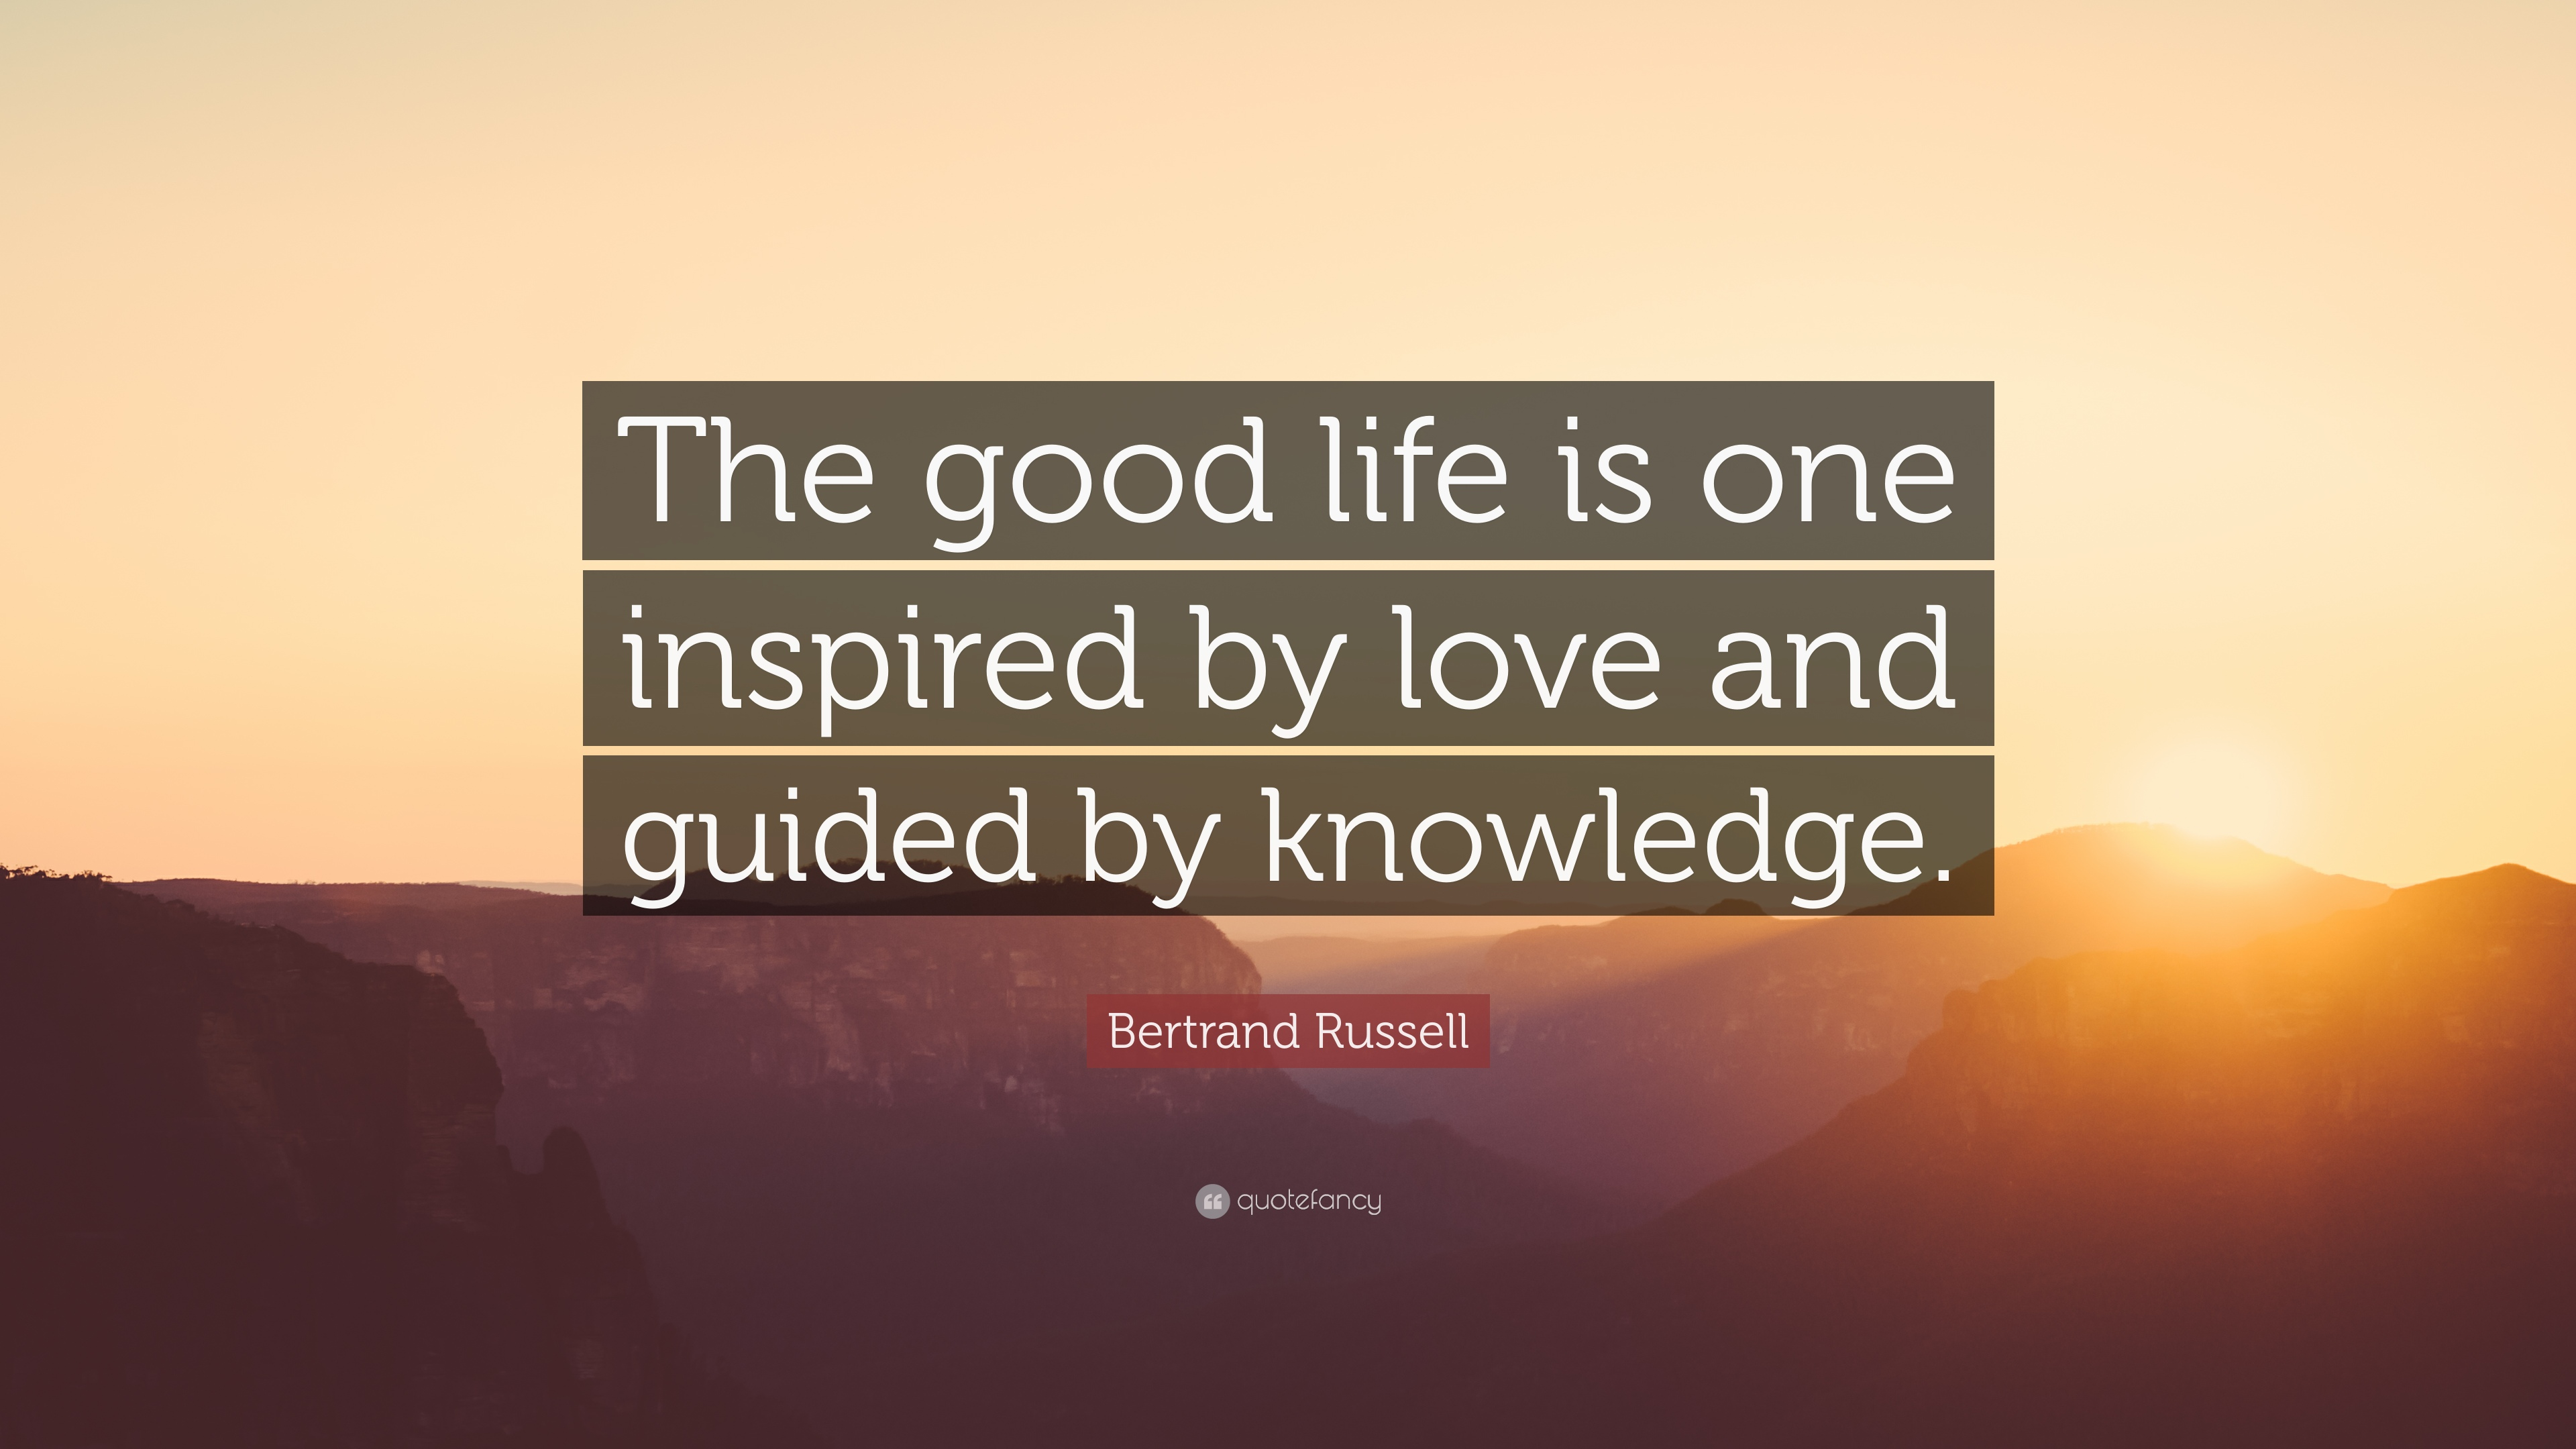 an opinion that good life is inspired by love and guided by knowledge The good life is inspired by love and guided by knowledge ~ bertrand russell.